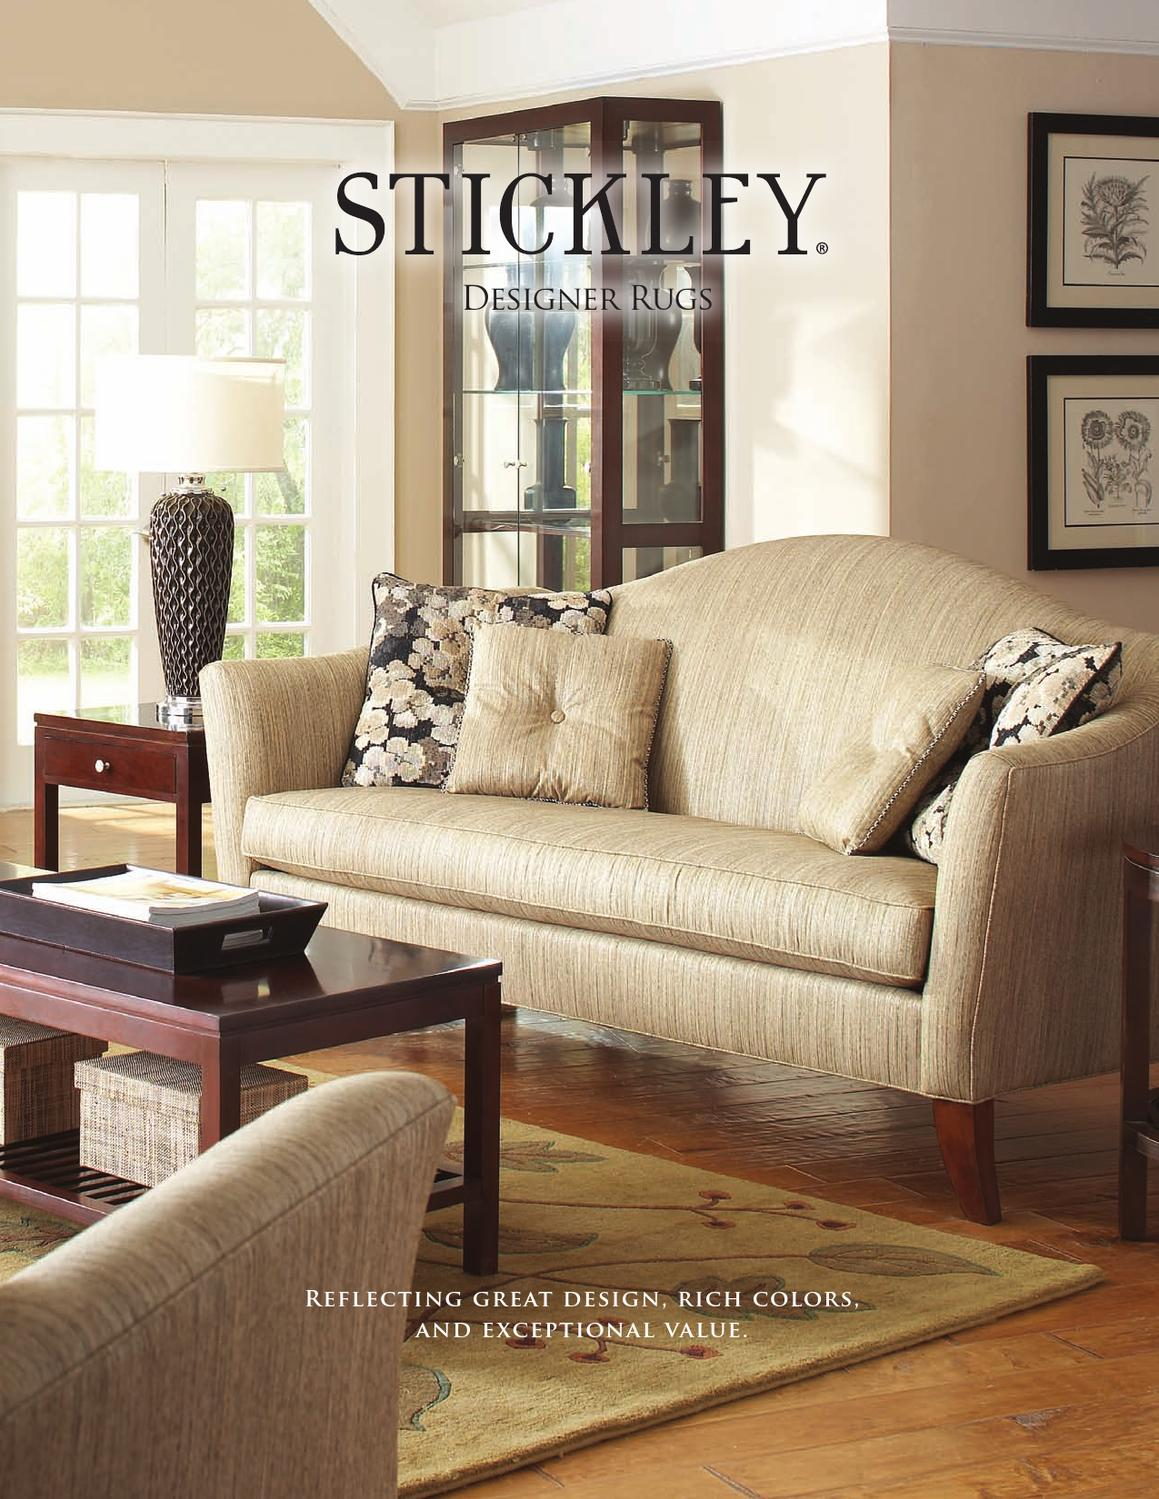 Stickley Designer Rugs Collection By Stickley   Issuu